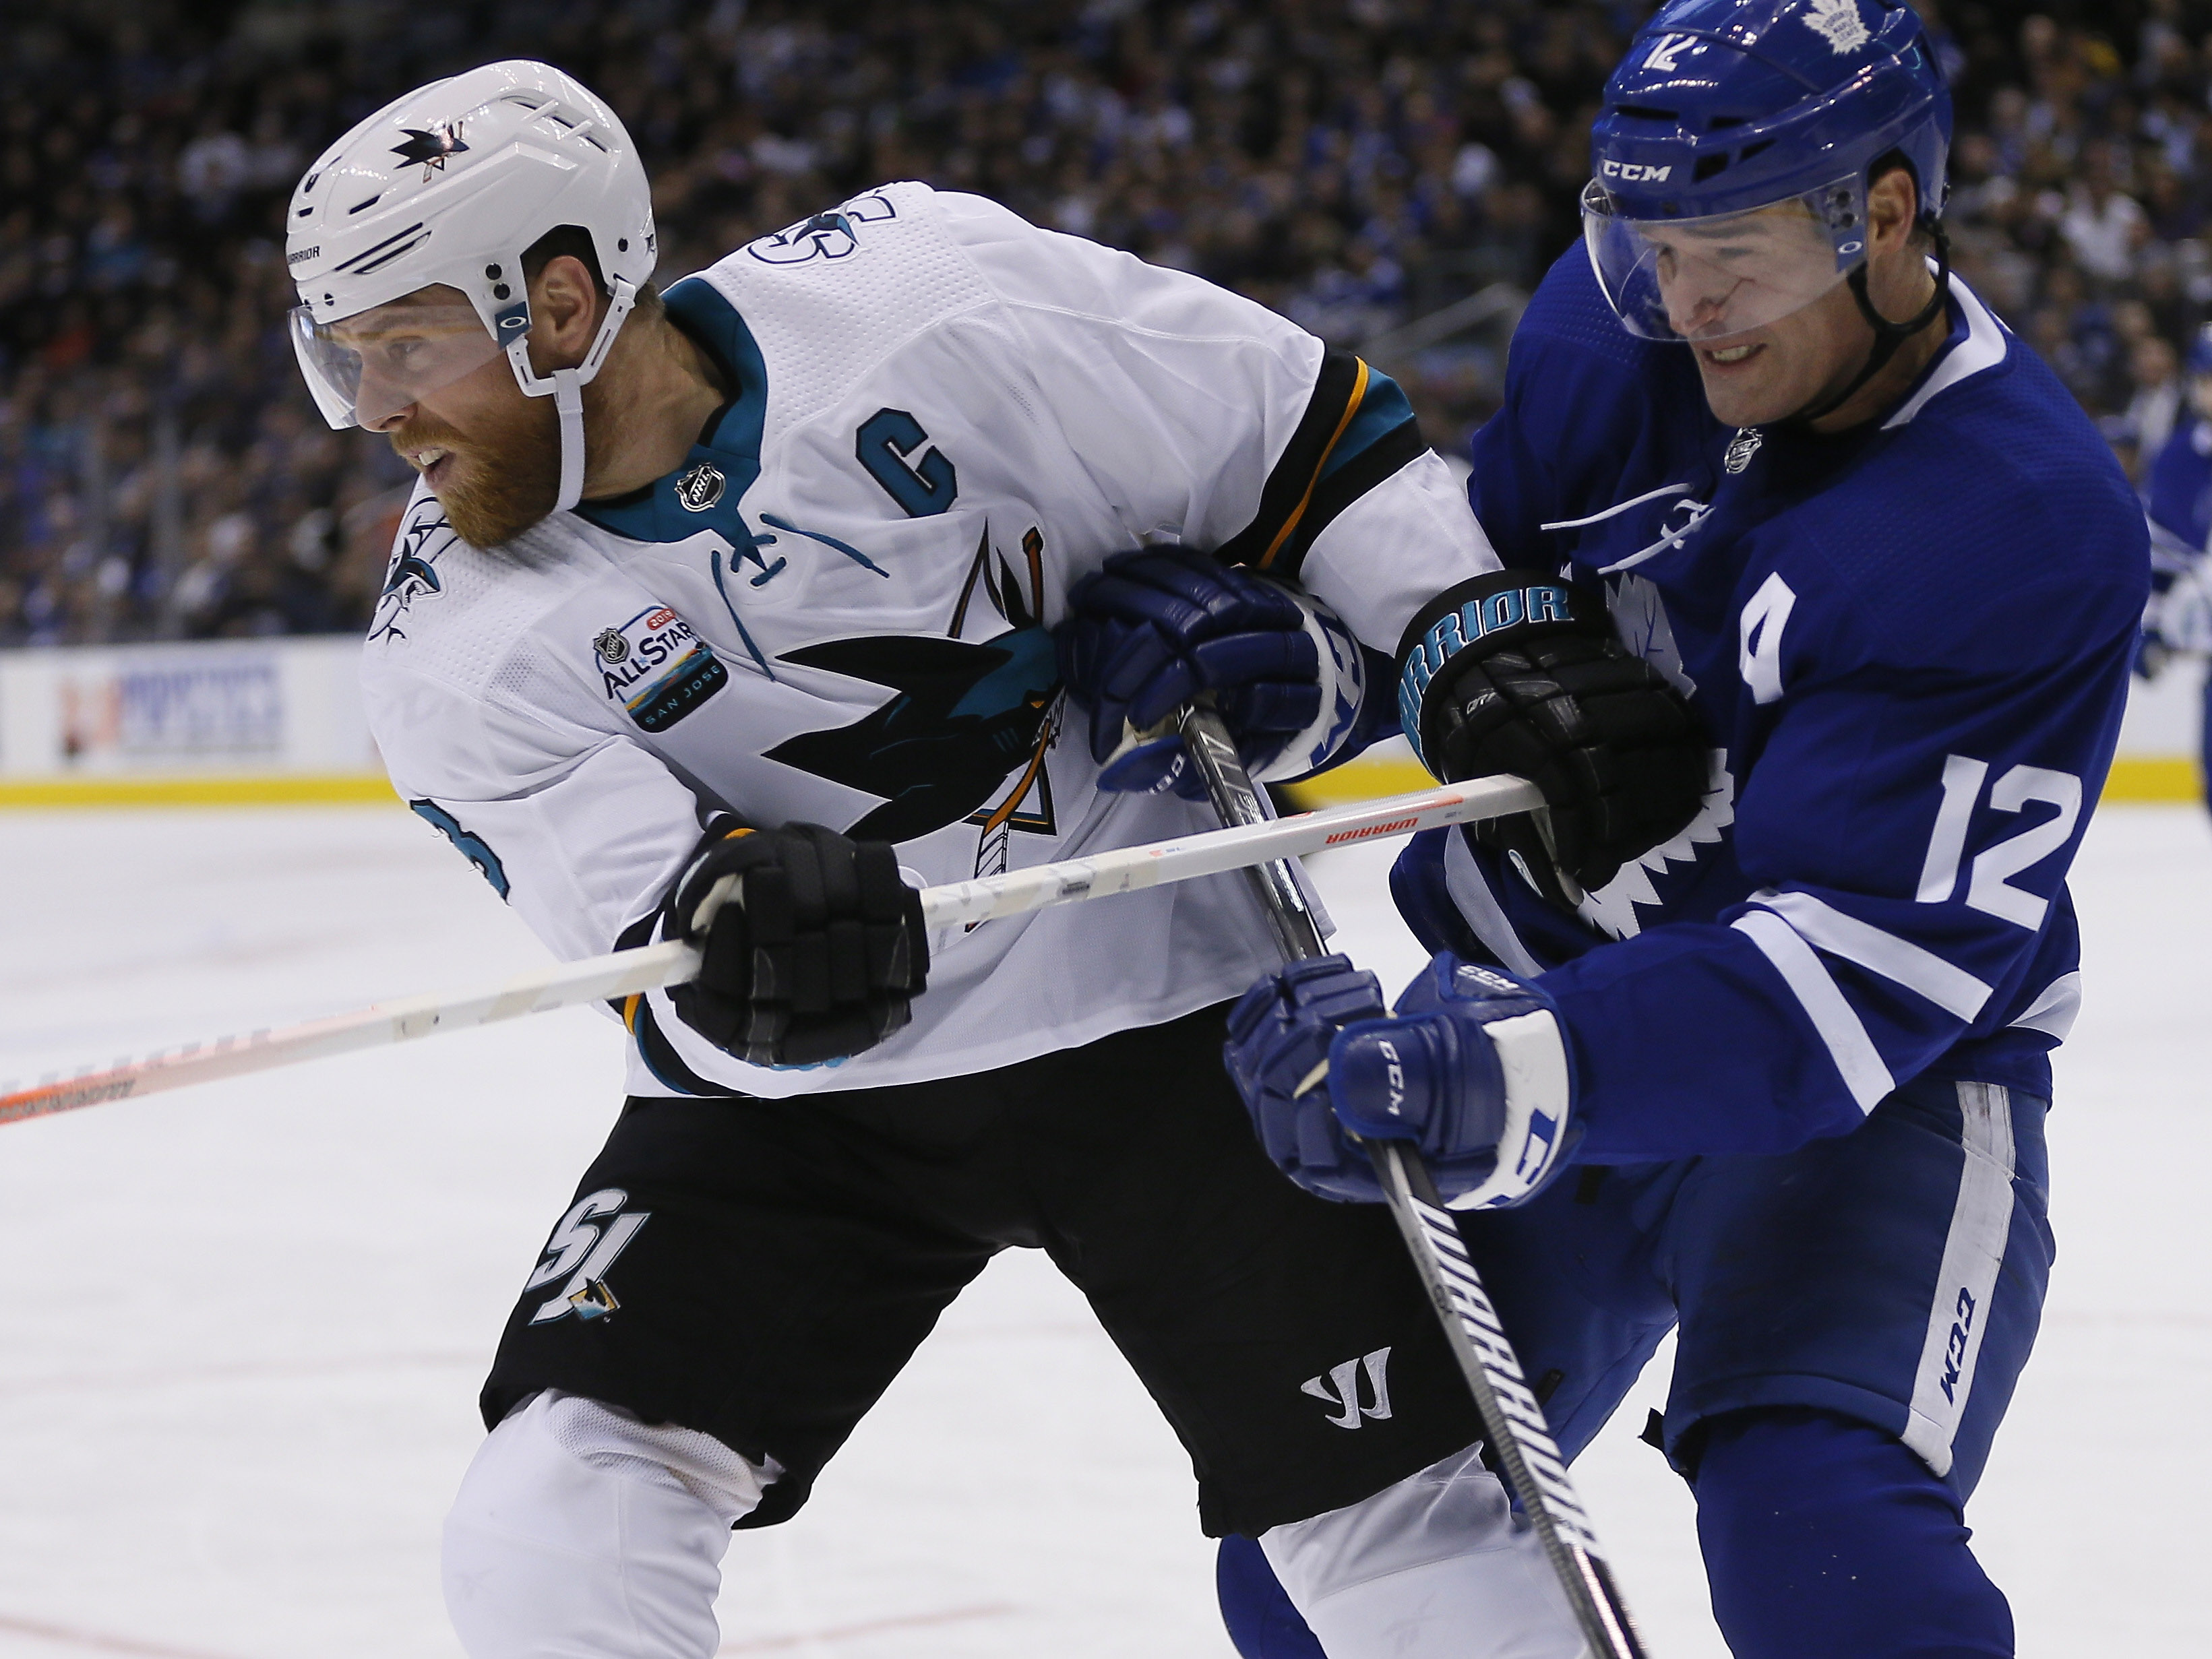 Nov 28, 2018; Toronto, Ontario, CAN; San Jose Sharks forward Joe Pavelski and Toronto Maple Leafs forward Patrick Marleau battle for position during the second period at Scotiabank Arena.